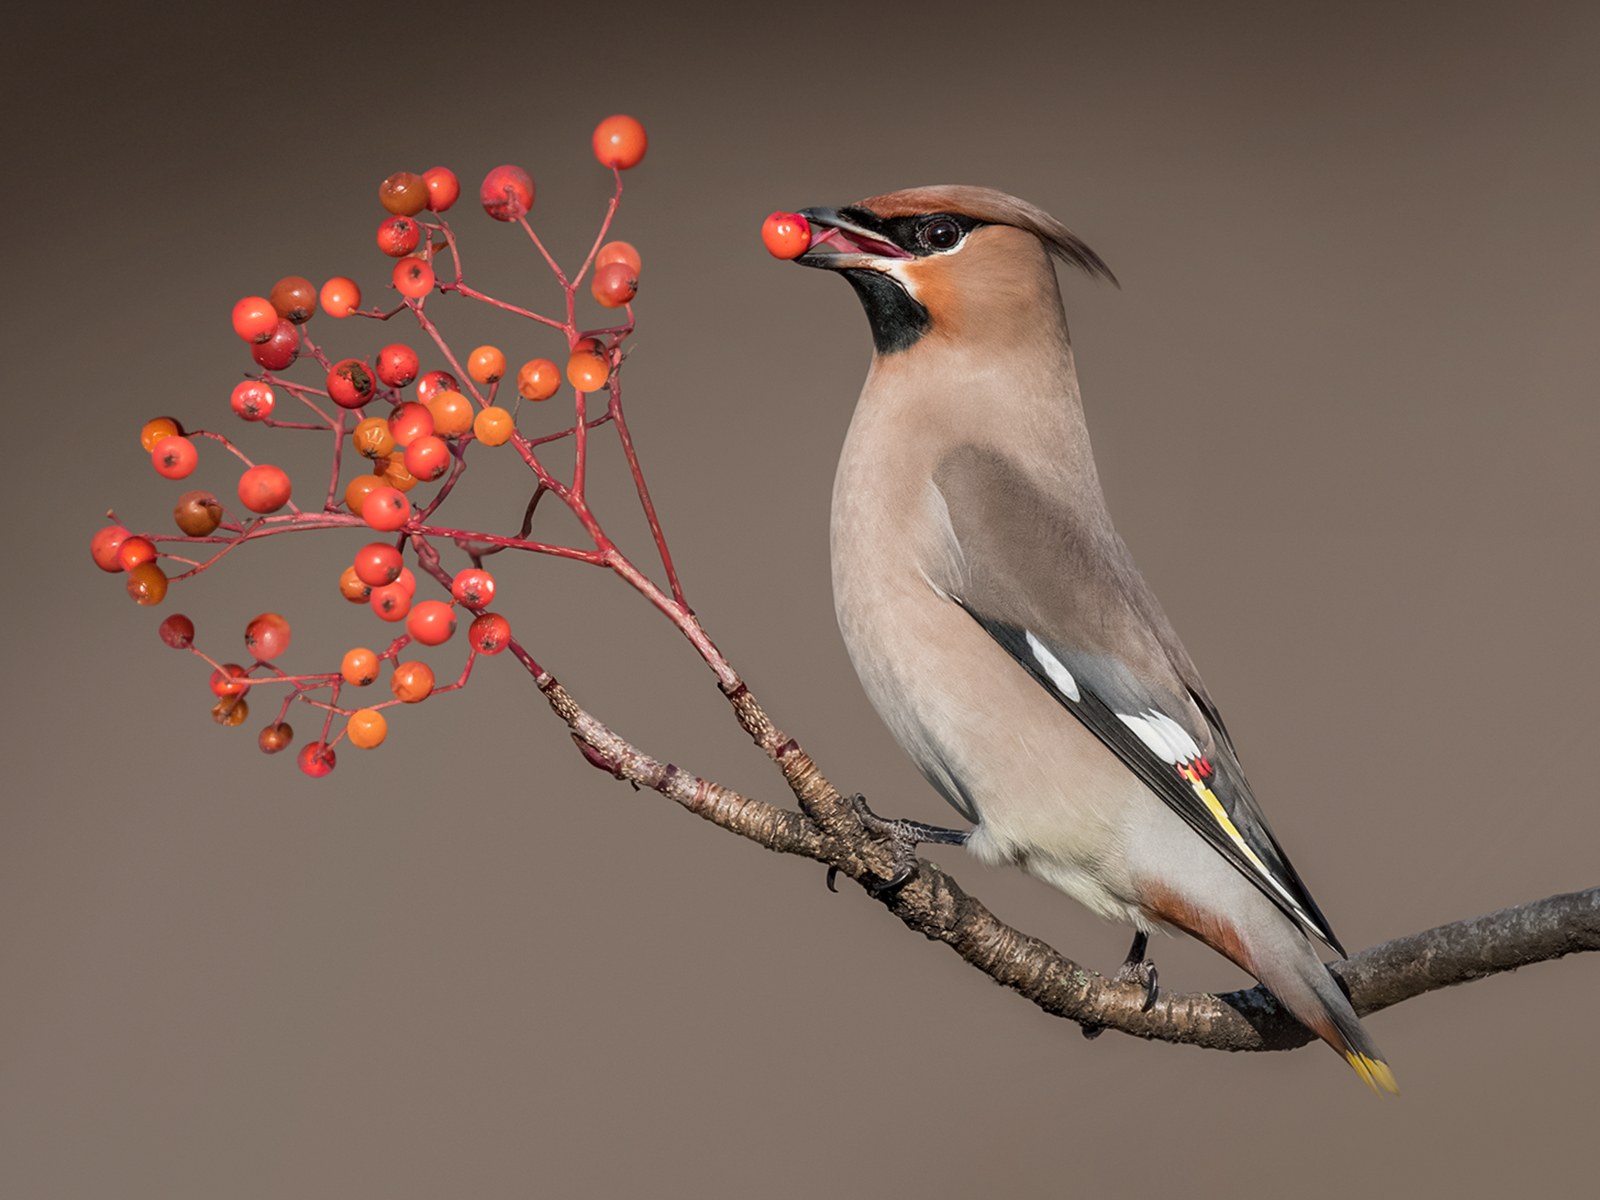 W0447189_Philip-Barber_Waxwing-with-rowen-berry